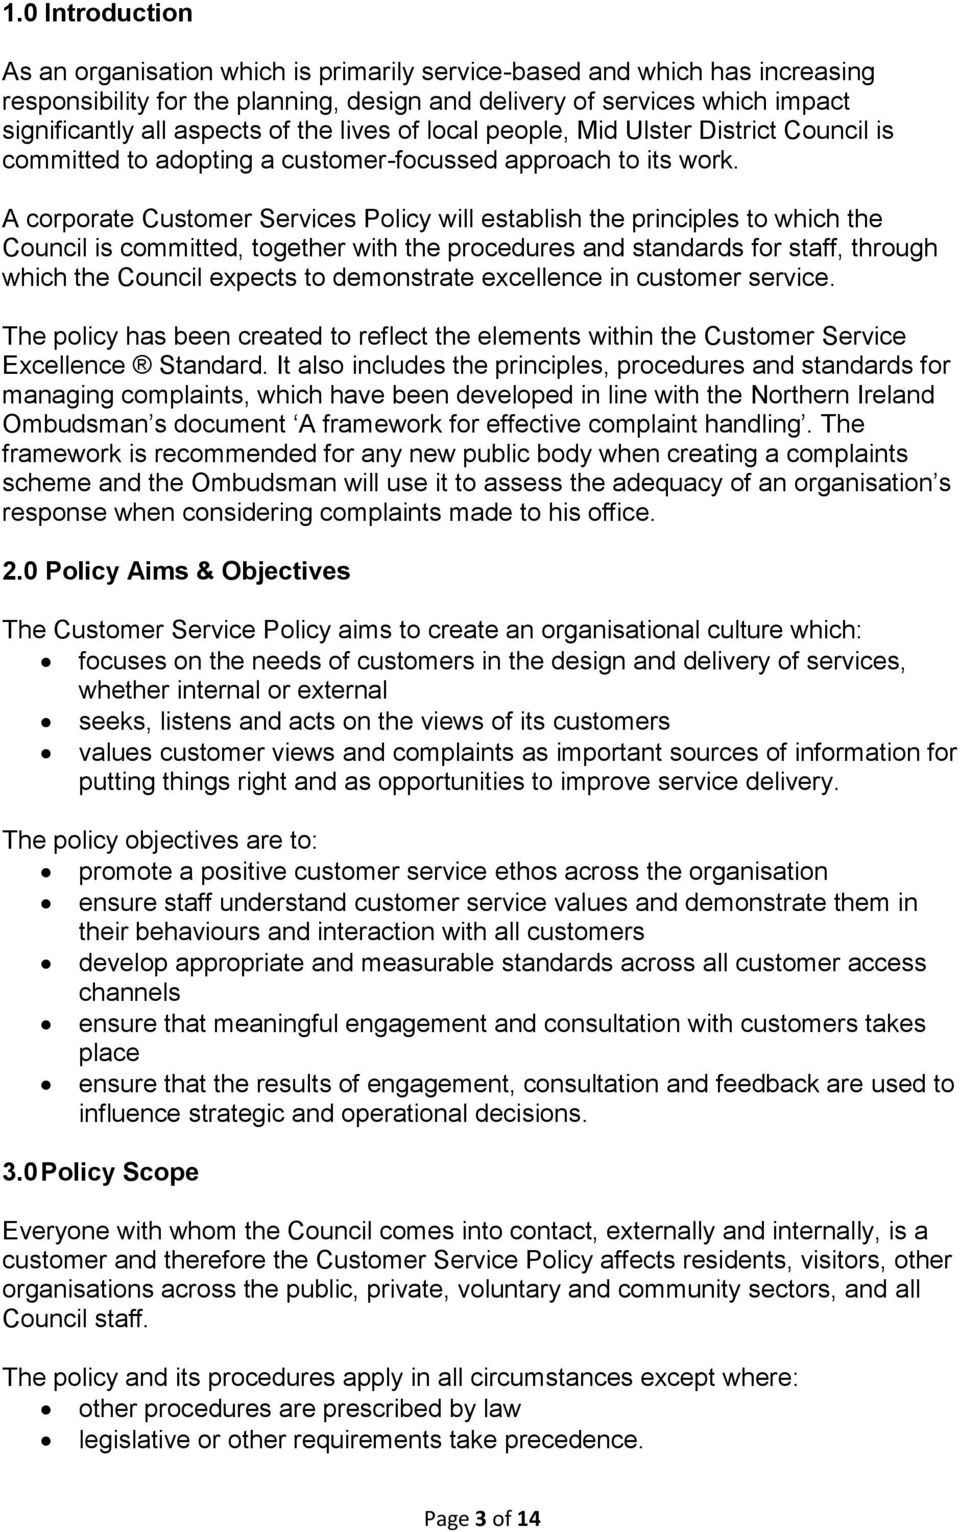 A corporate Customer Services Policy will establish the principles to which the Council is committed, together with the procedures and standards for staff, through which the Council expects to